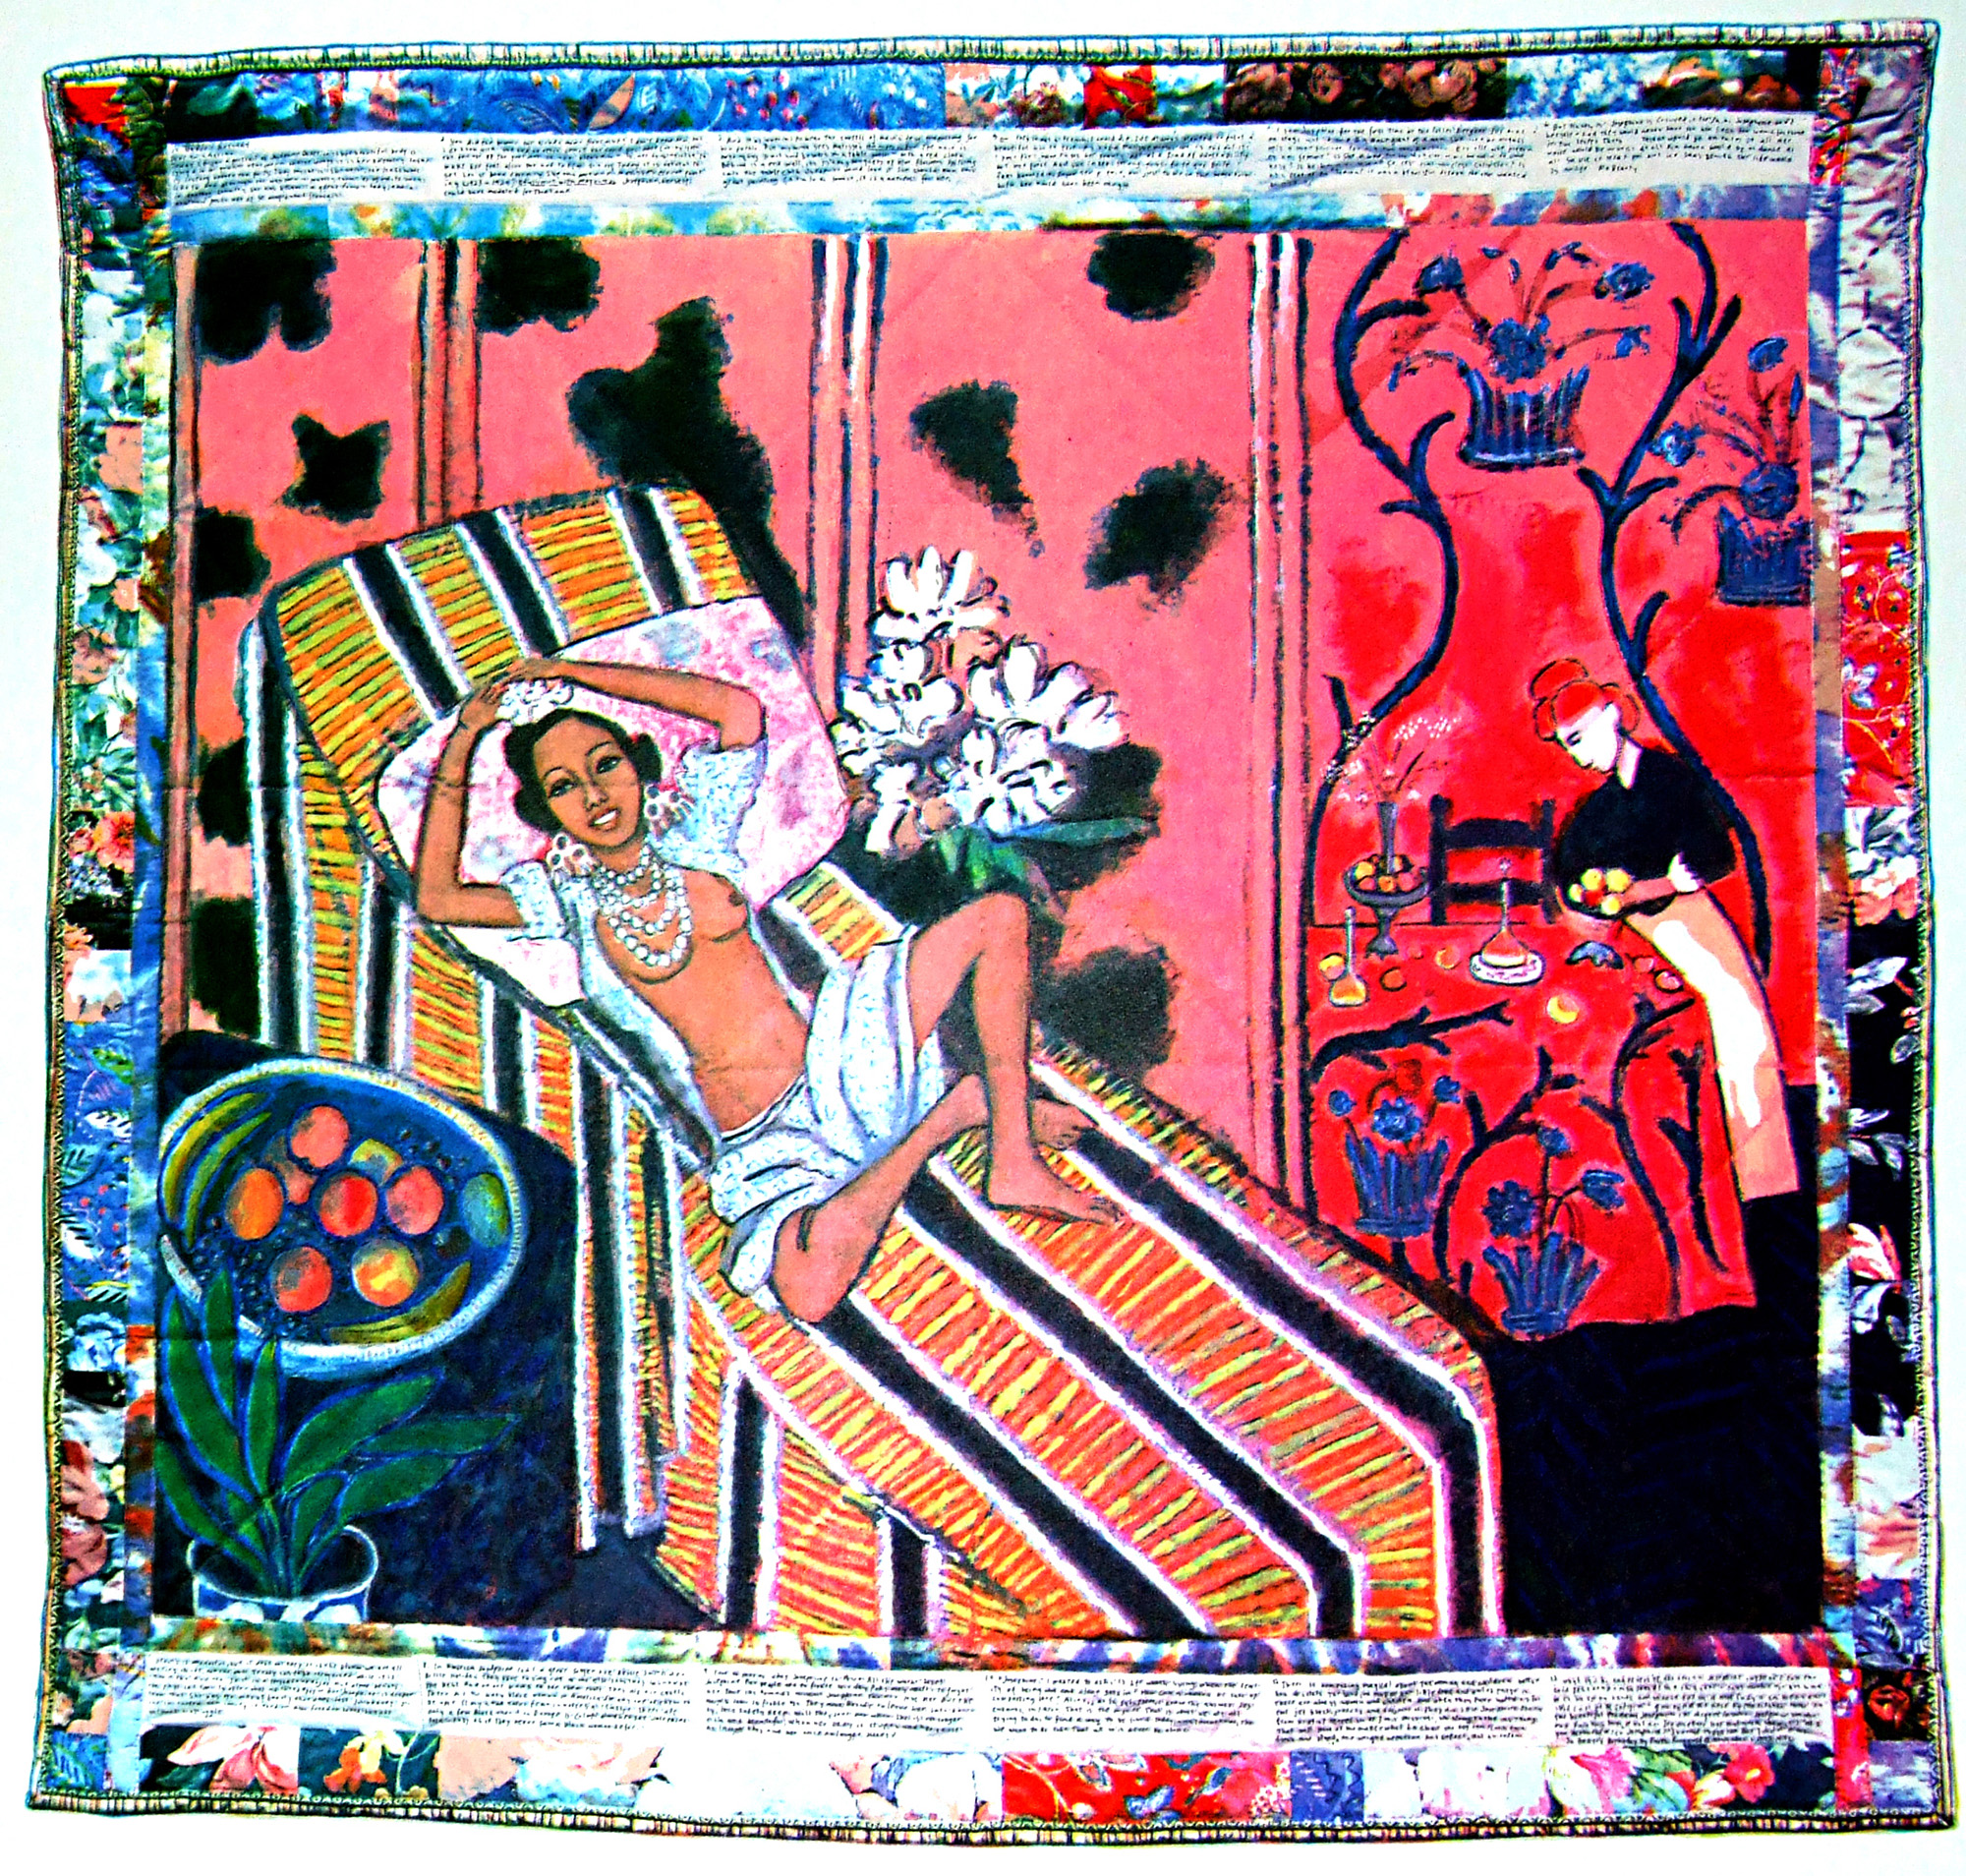 Faith Ringgold, <i>Jo Baker's Birthday</i>, from the portfolio <i>10 x 10: Ten Women/Ten Prints</i>, 1995. Eli and Edythe Broad Art Museum, Michigan State University, MSU purchase, funded by the Office of the Vice President for Research and Graduate Studies.